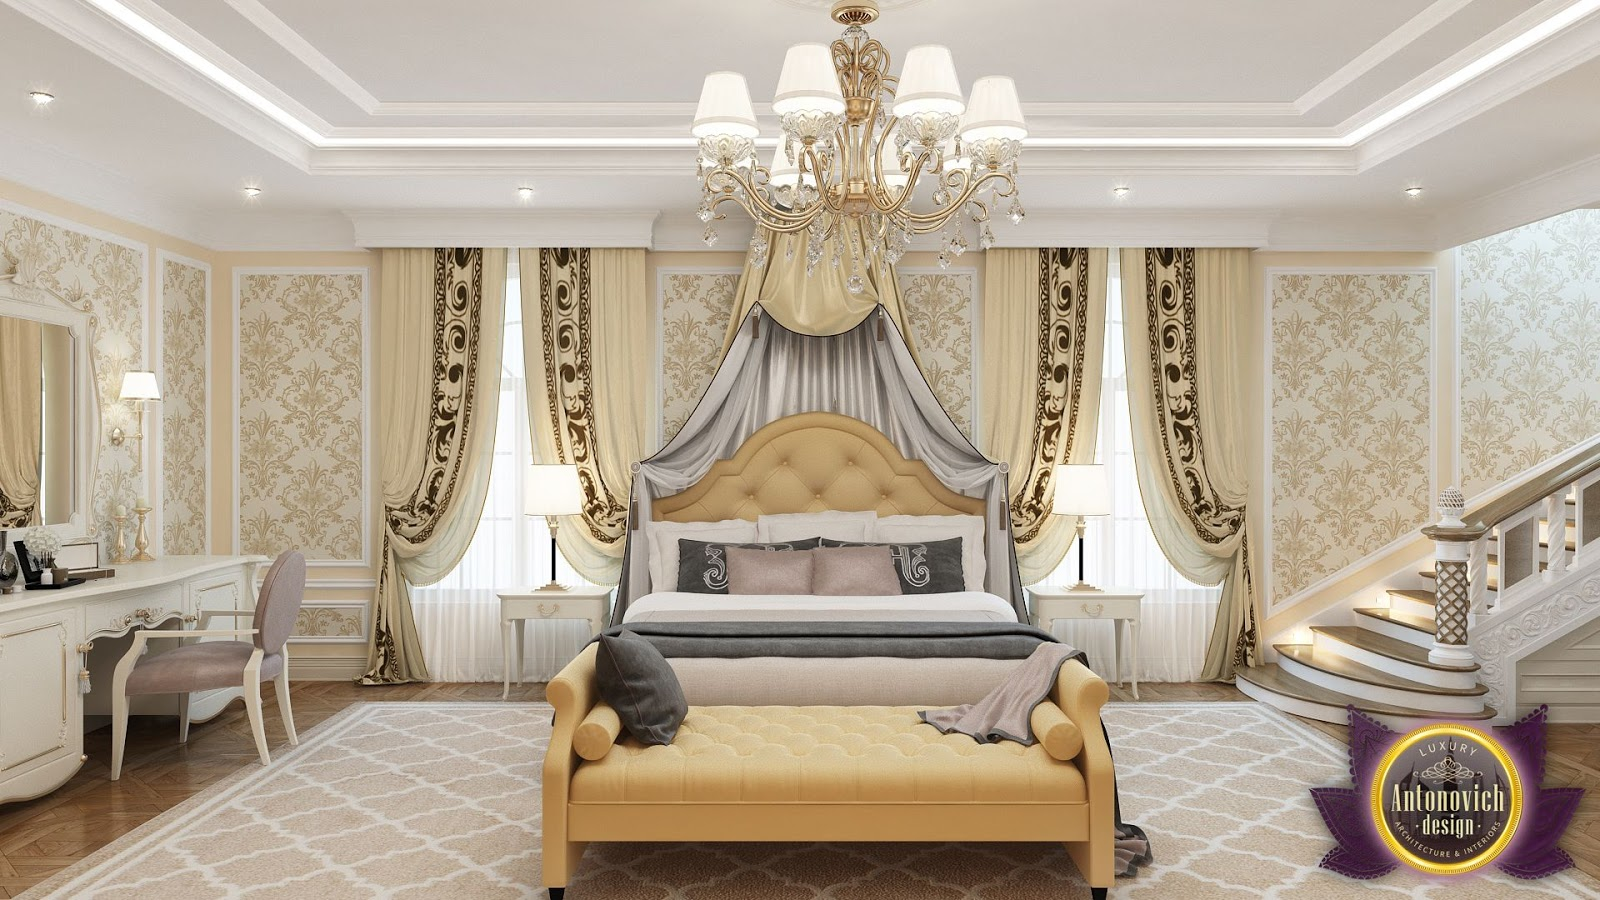 Luxury antonovich design uae master bedroom design by katrina antonovich - Bedrooms decoration ...